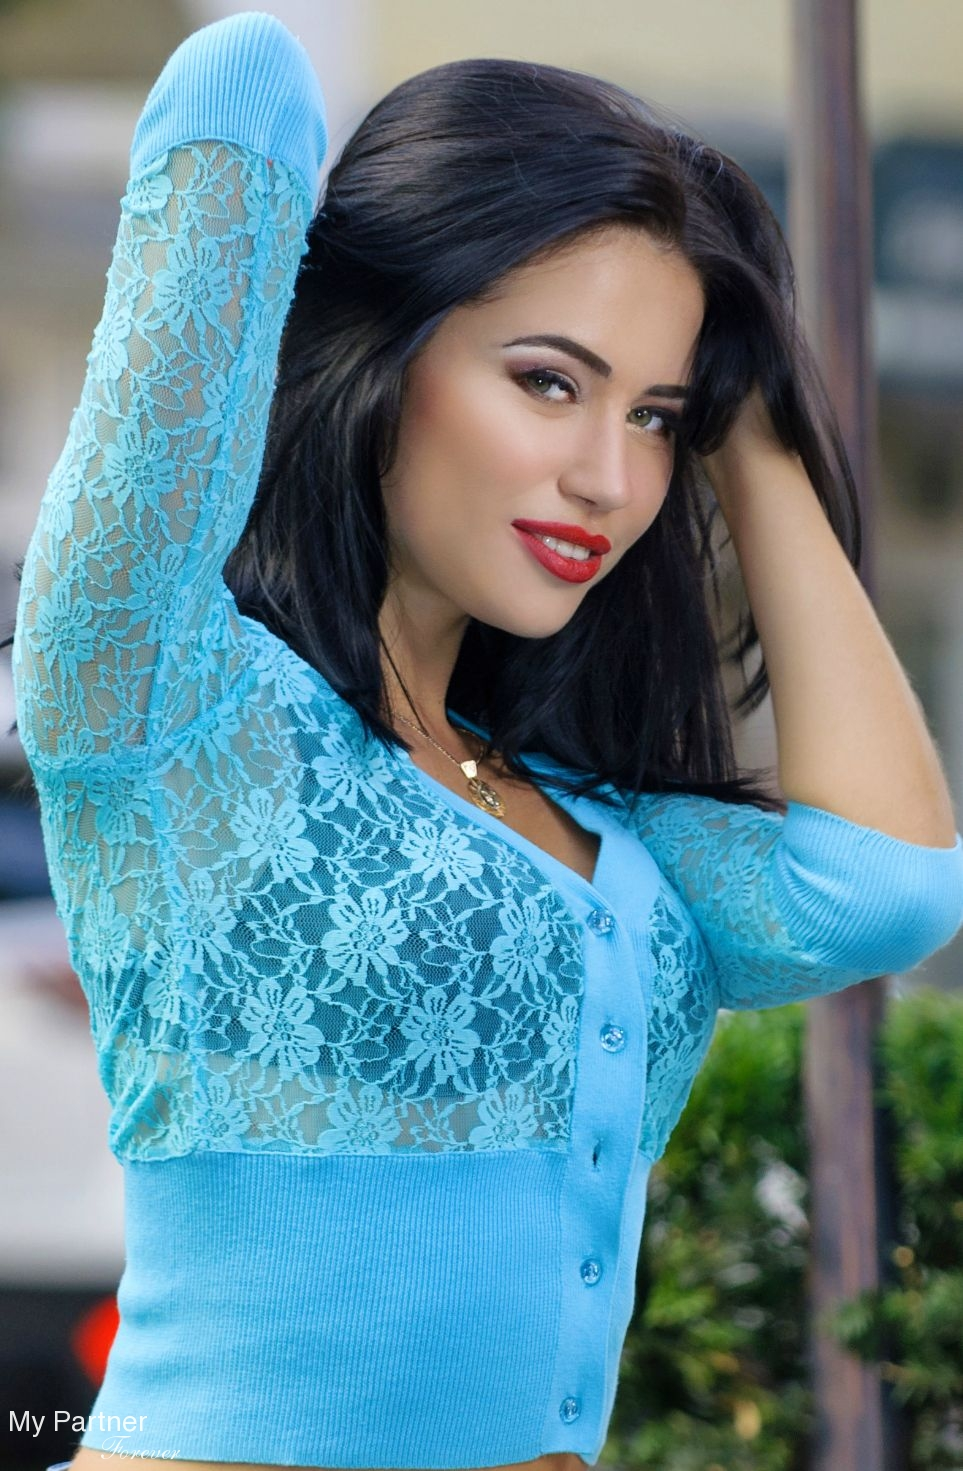 Meet Gorgeous Ukrainian Woman Viktoriya from Poltava, Ukraine